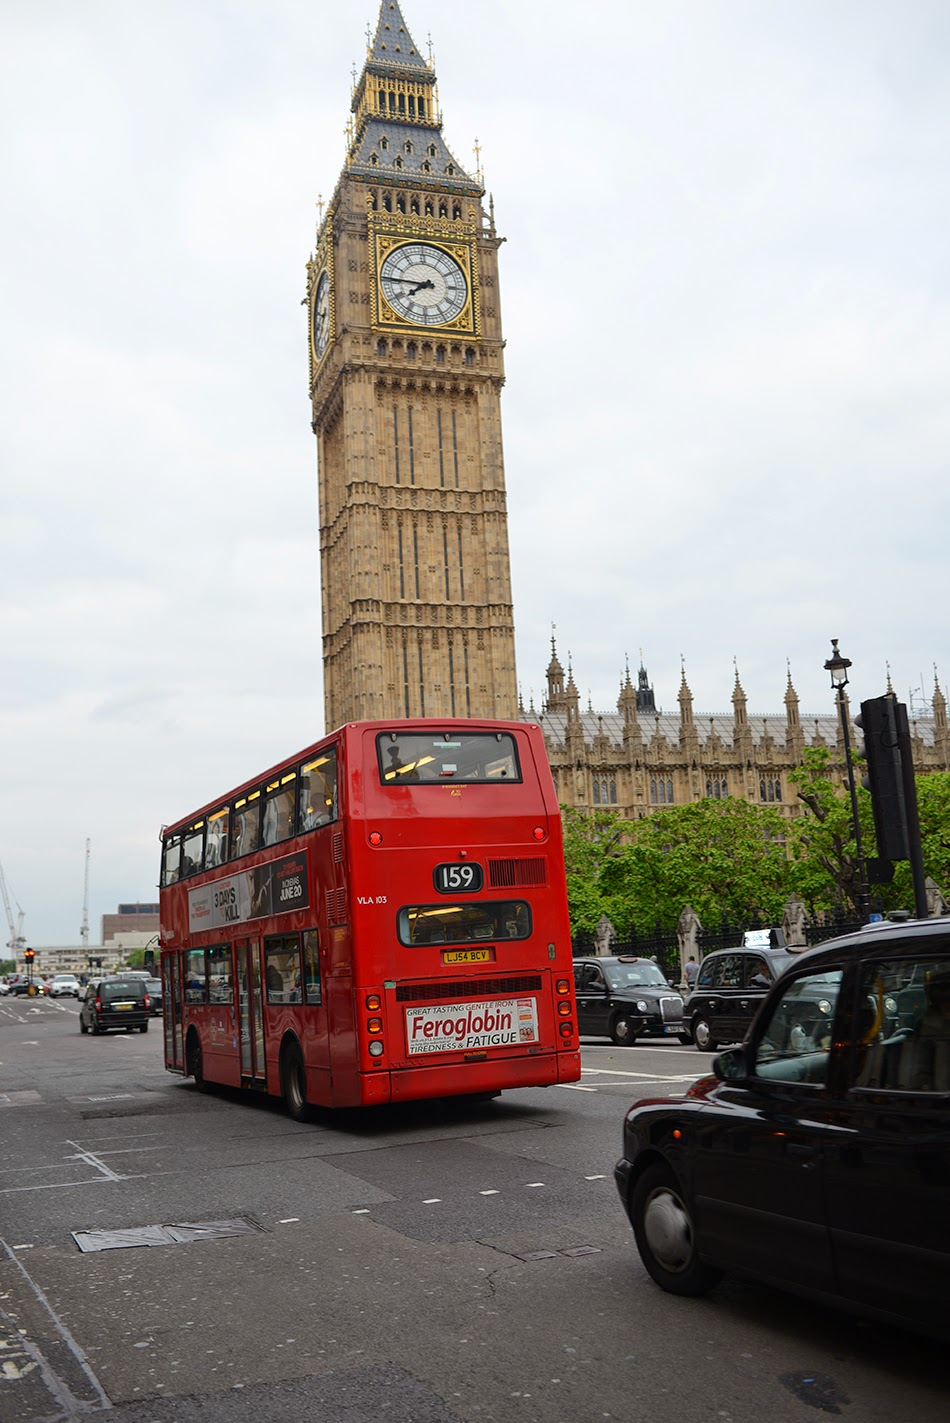 medium resolution of arriving back to one of my favorite places ever london the double decker red bus s phone booths and architecture just get me going